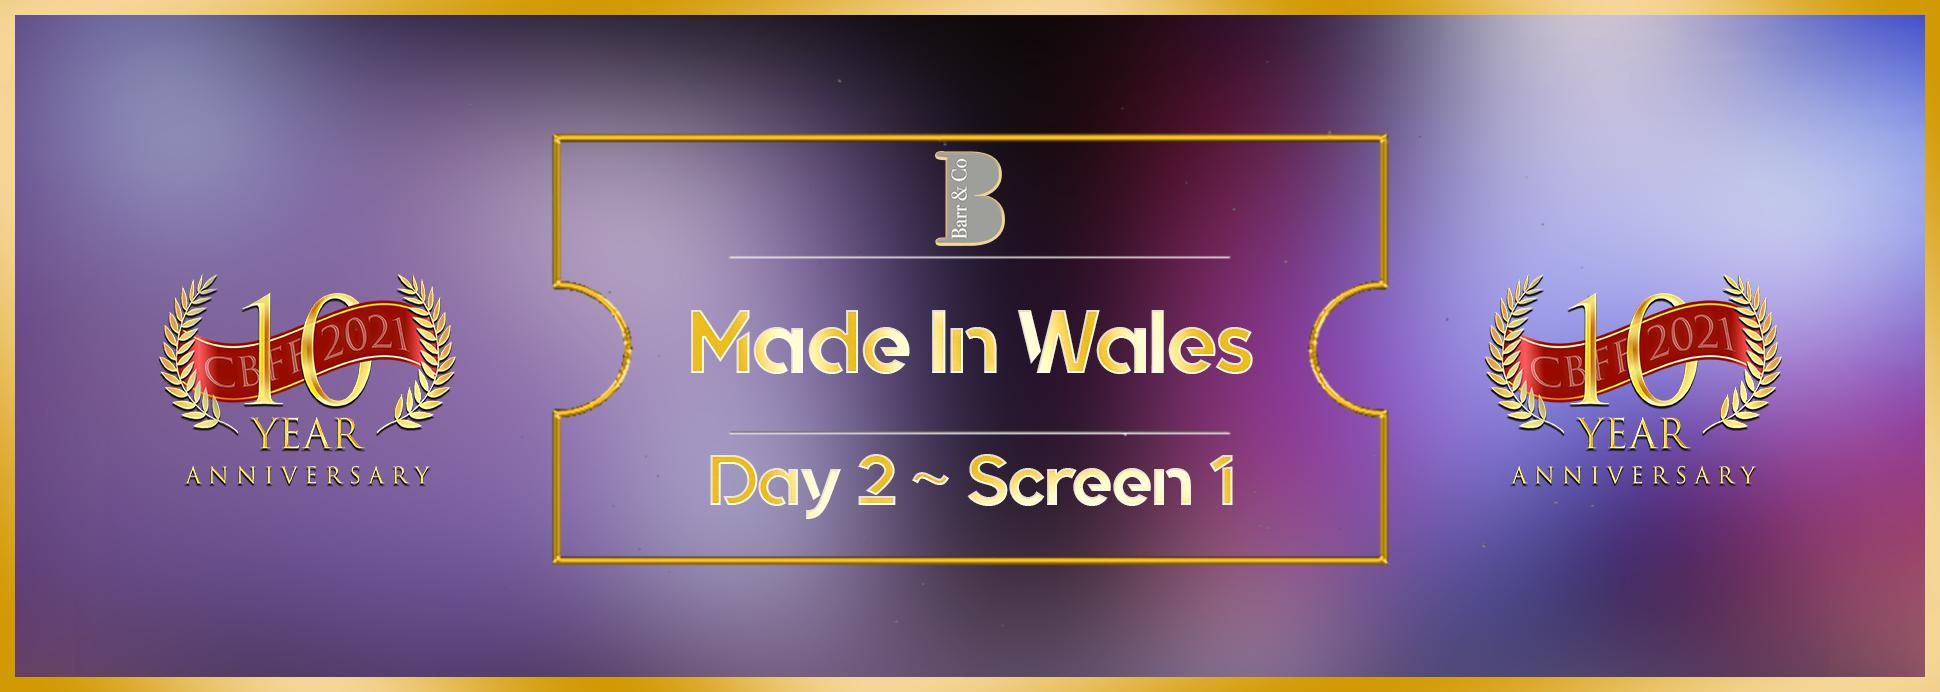 Day 2, Screen 1: Made In Wales